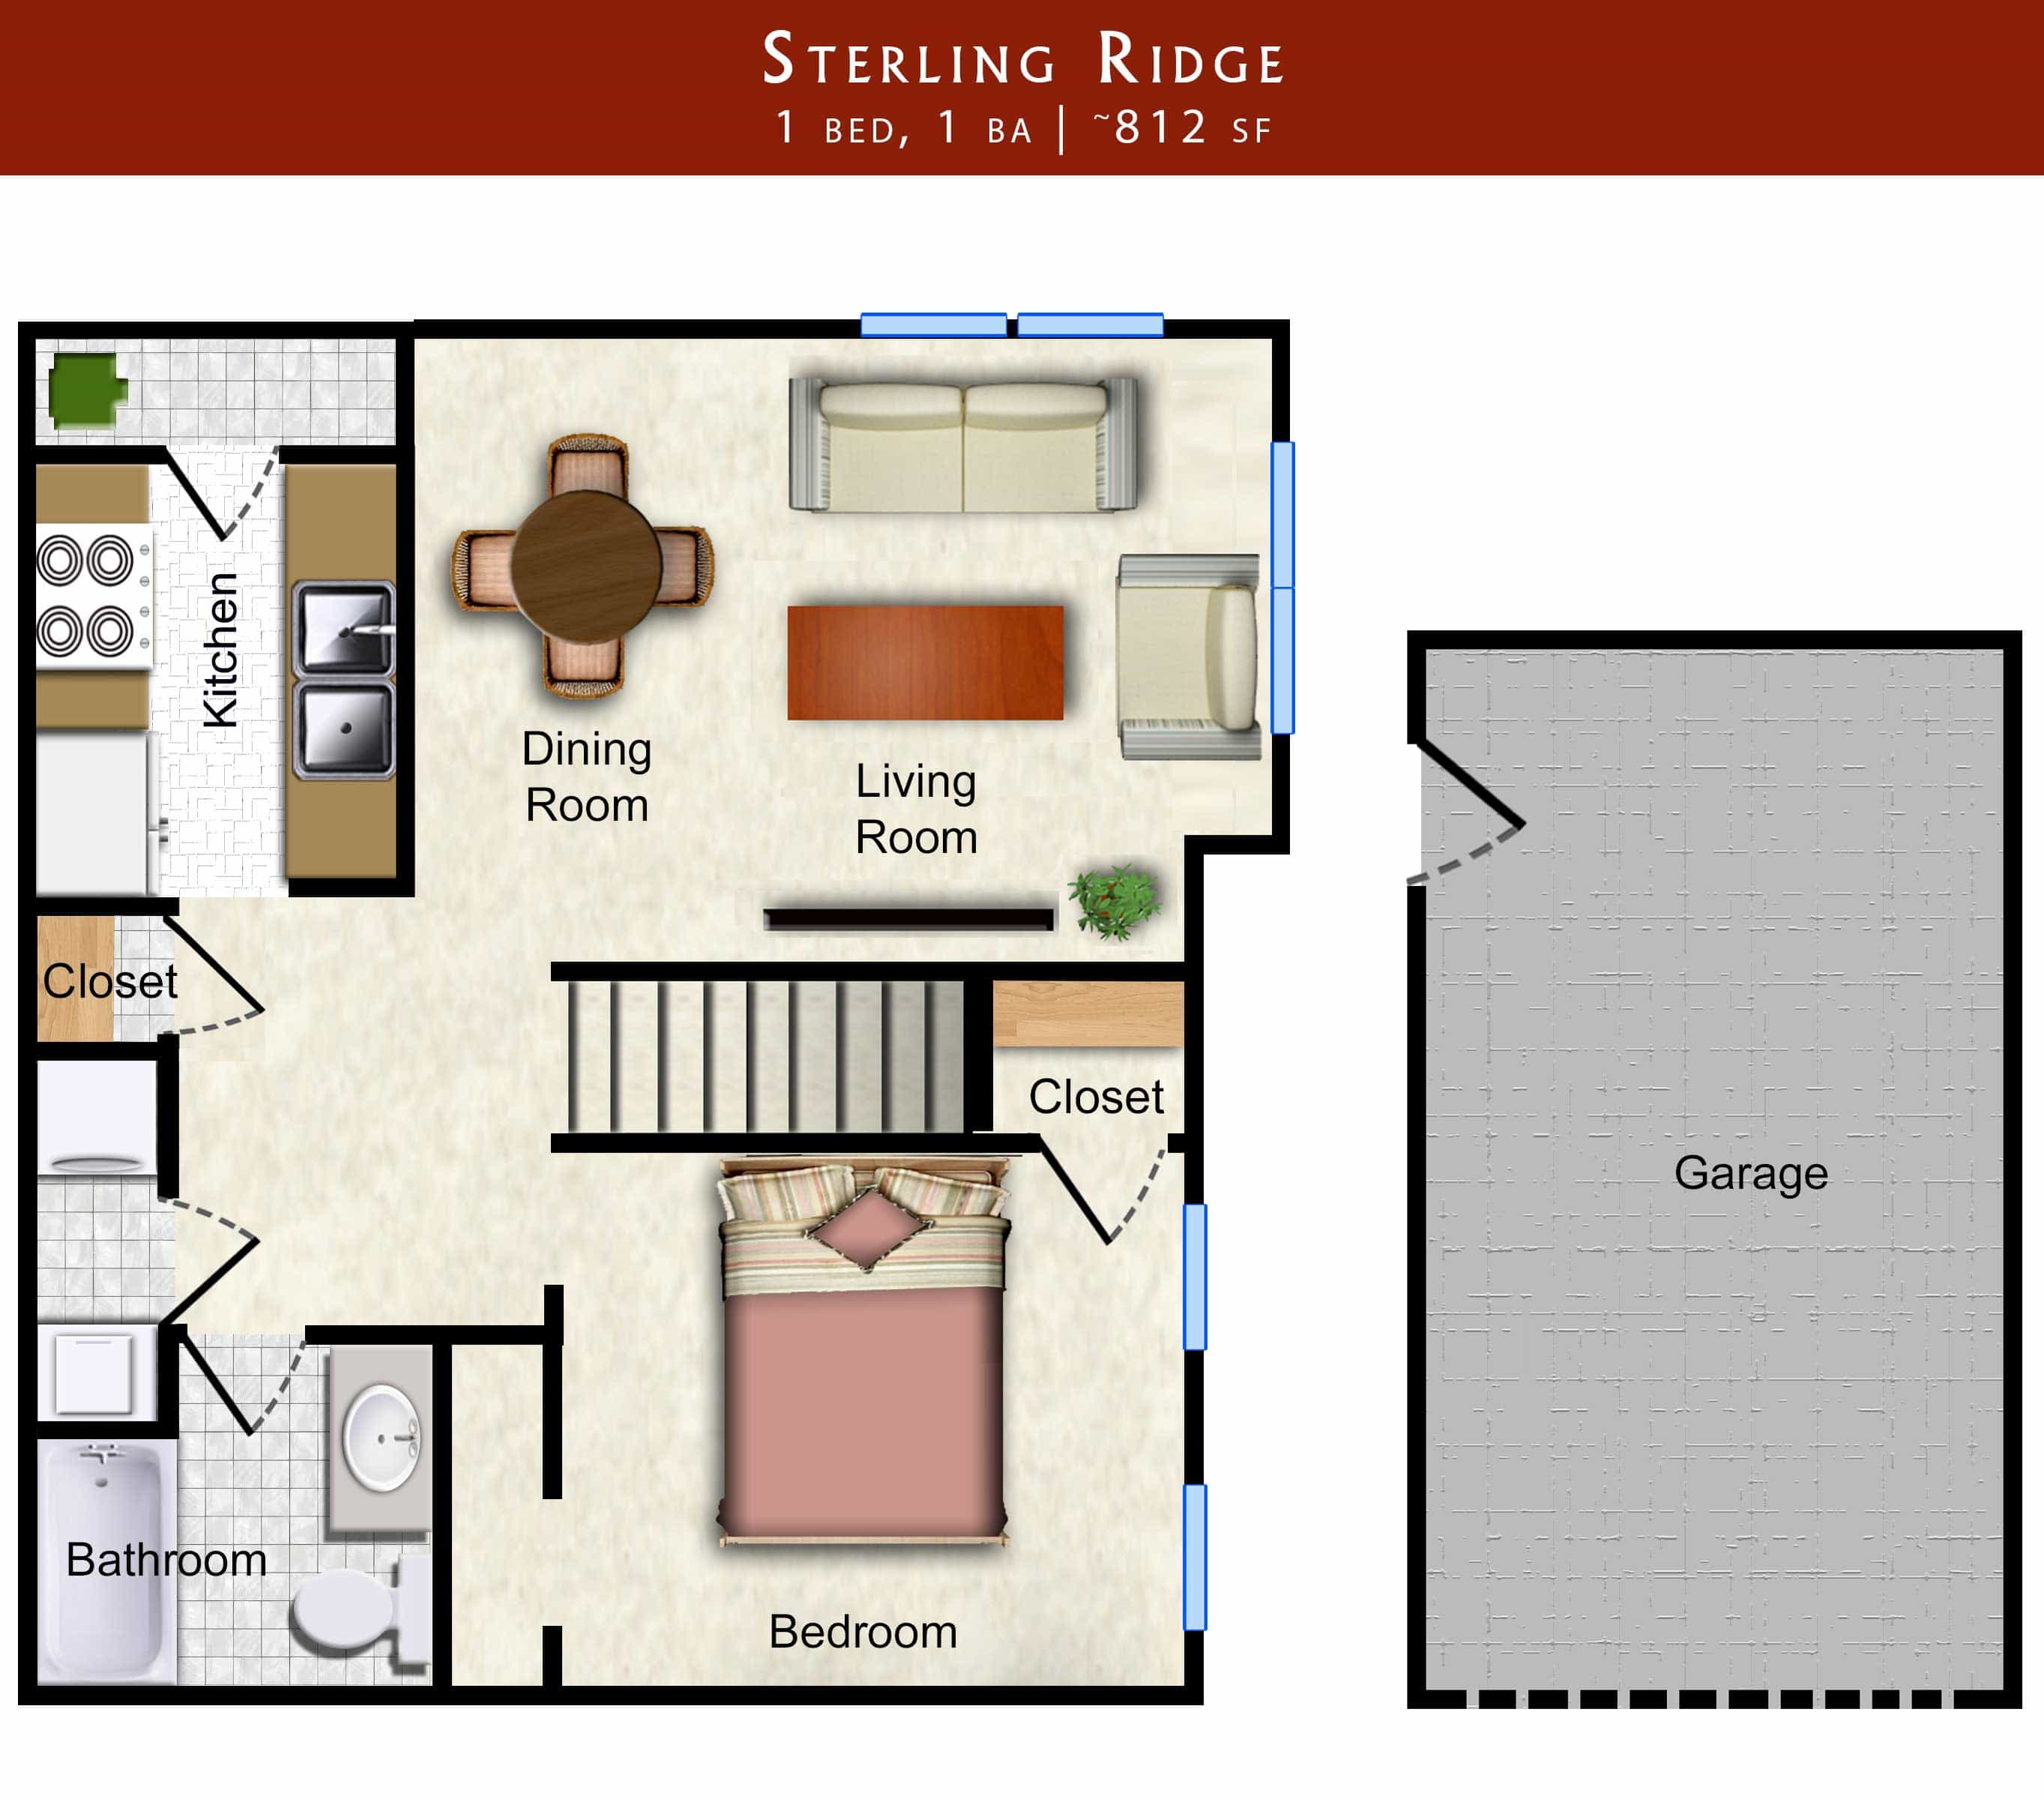 Sterling Ridge: 1 bed, 1 bath 812 sq. ft. with garage floor plan of Lawrence apartment